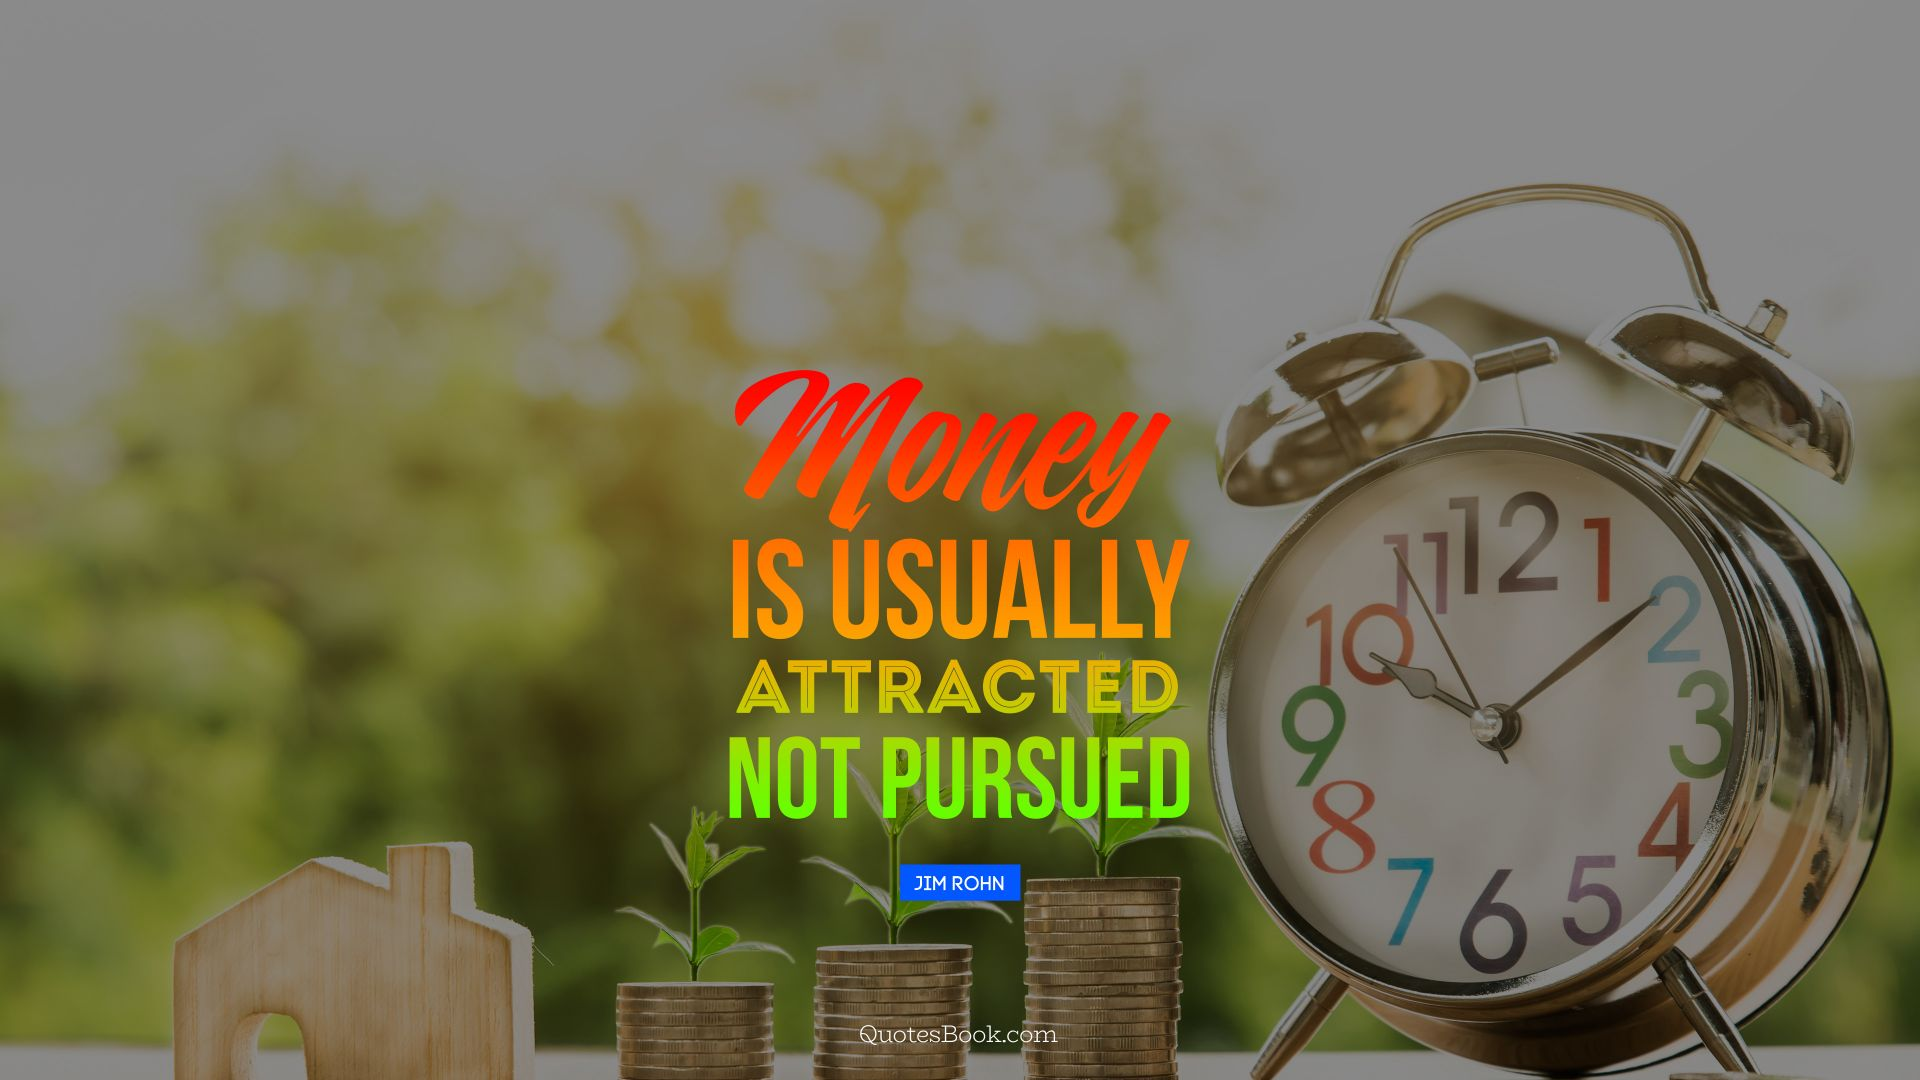 Money is usually attracted not pursued. - Quote by Jim Rohn